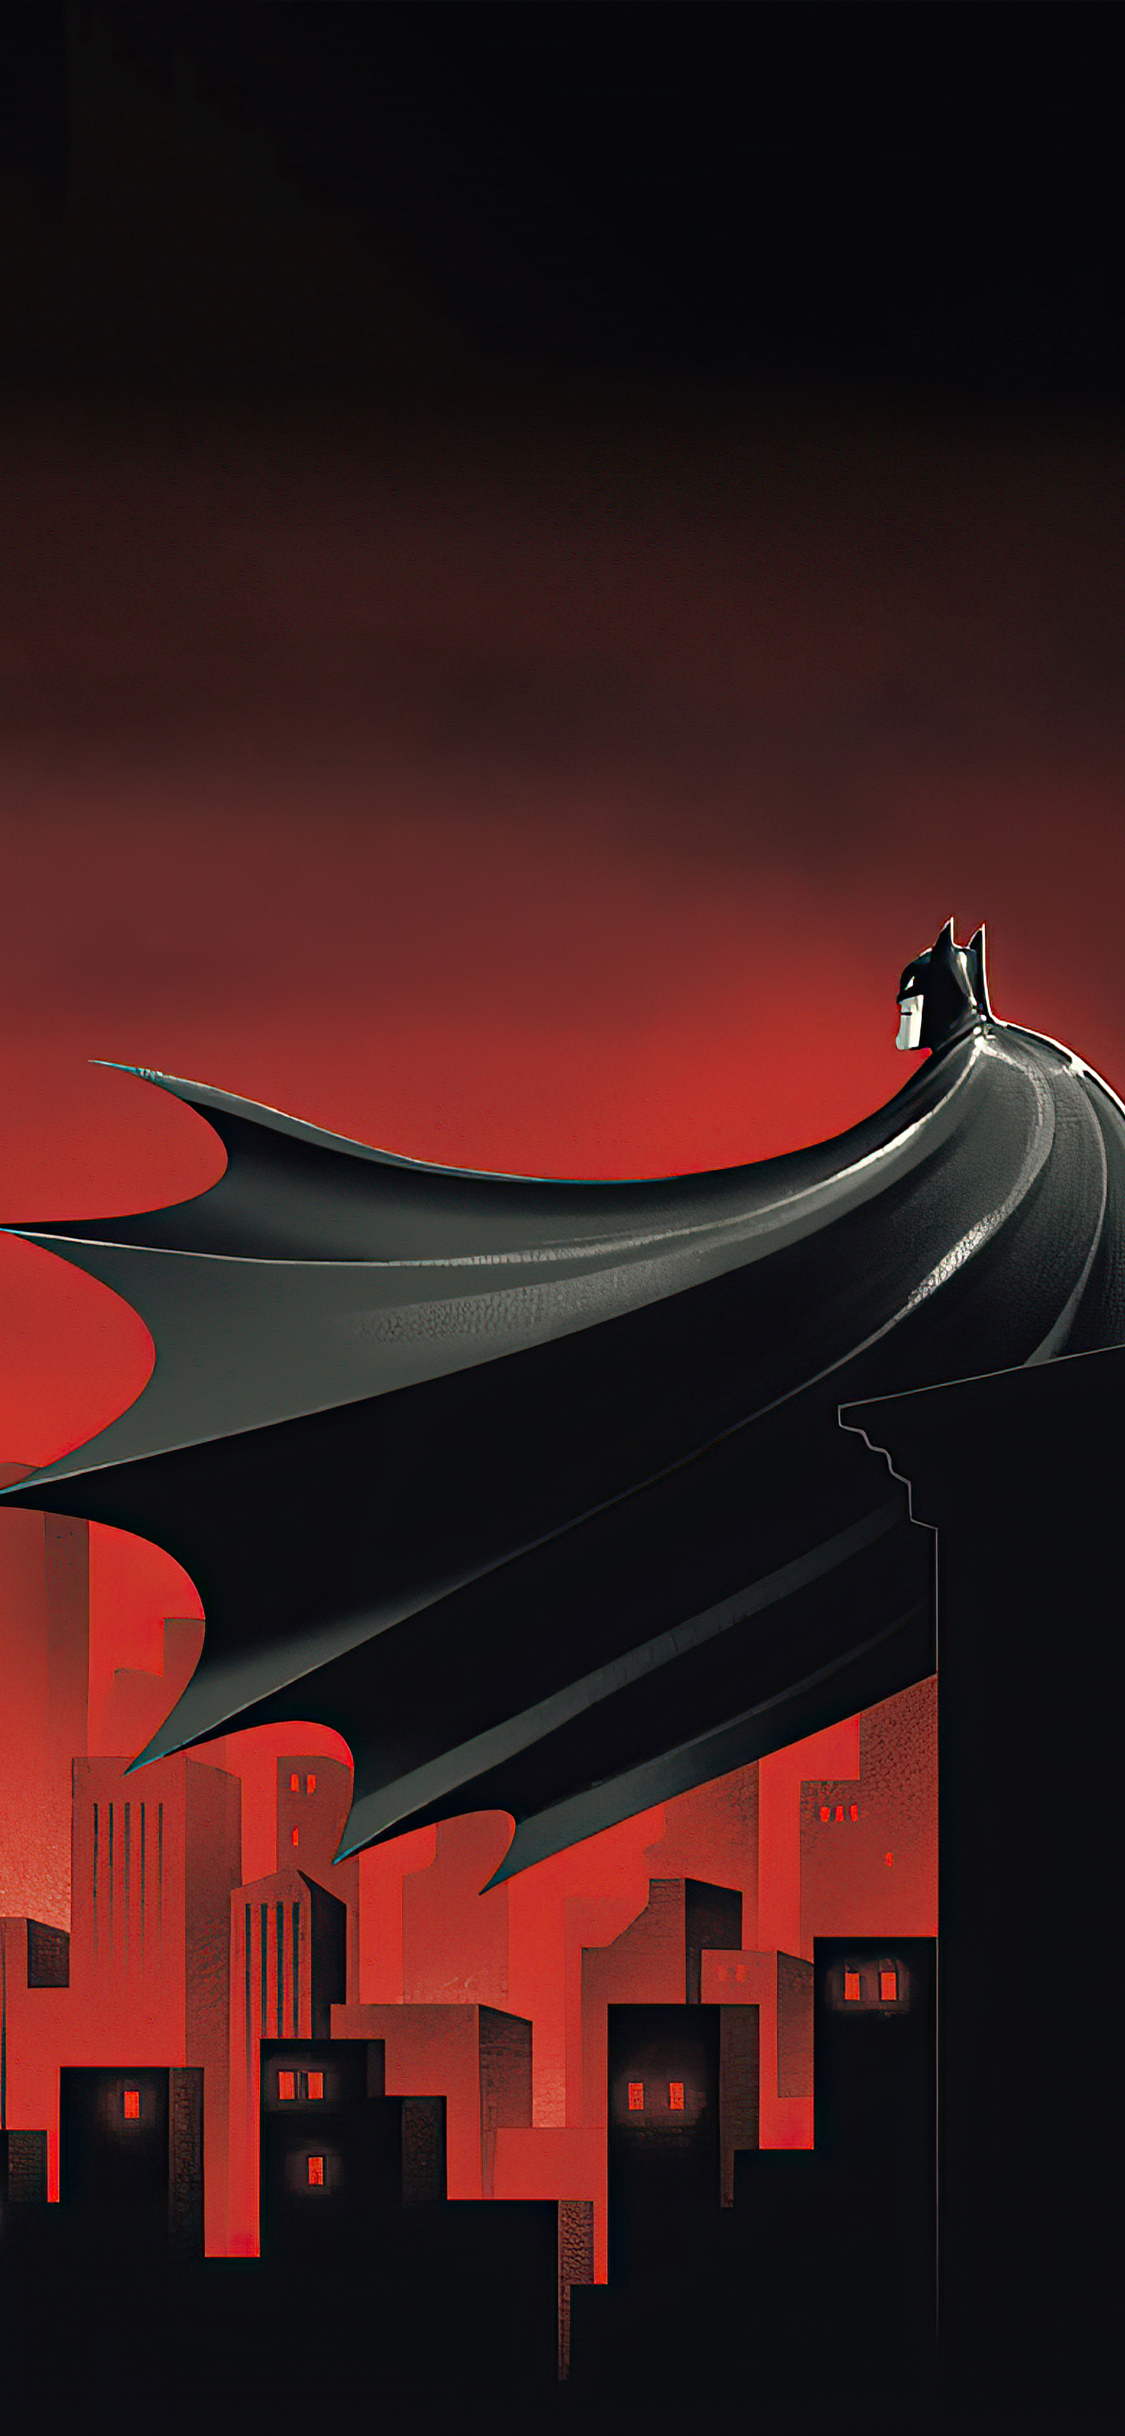 1125x2436 Batman The Animated Series Red World 4k Iphone Xs Iphone 10 Iphone X Hd 4k Wallpapers Images Backgrounds Photos And Pictures